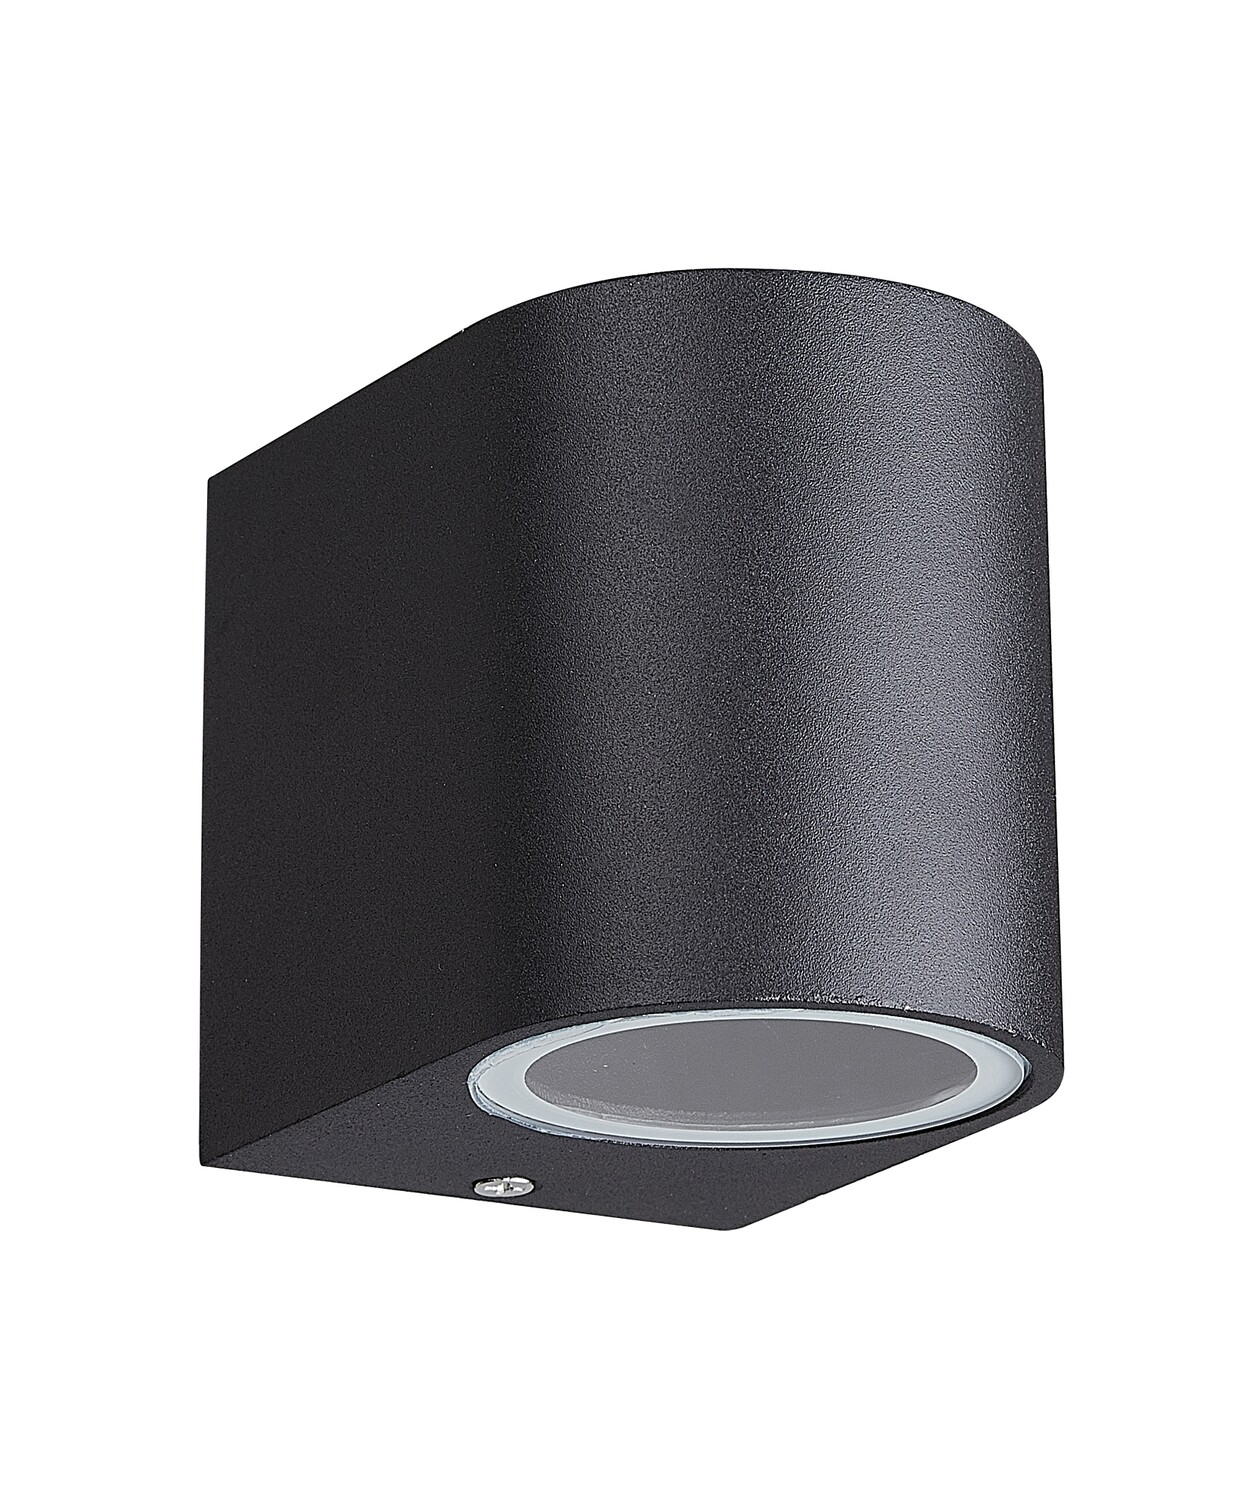 Kandanchu Round Wall Lamp, 1 x GU10, IP54, Sand Black